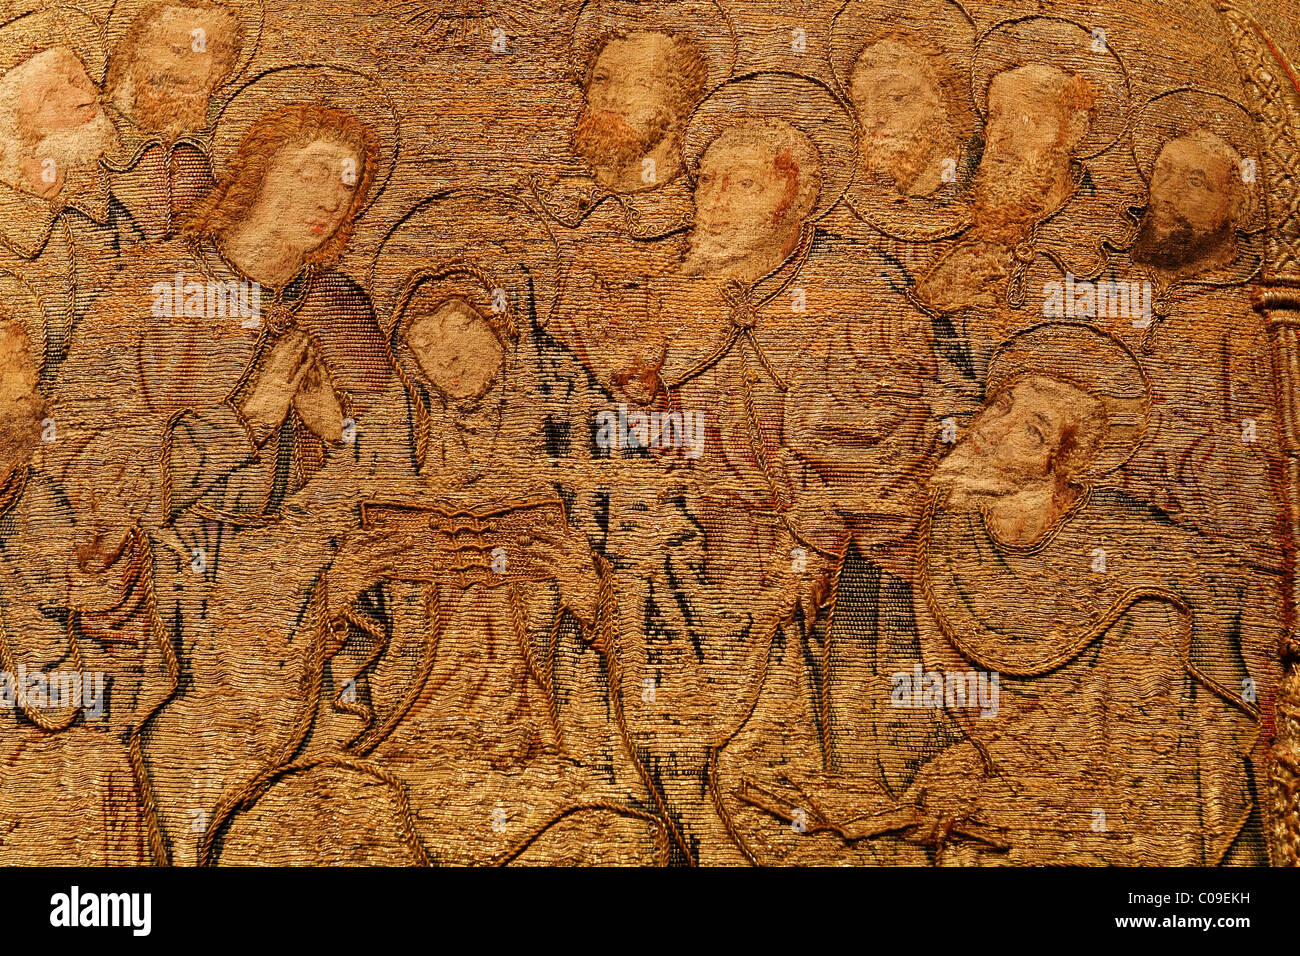 Mary and the apostles with halo, elaborate embroidery on a chasuble, historical liturgical garment, Stiftsmuseum - Stock Image